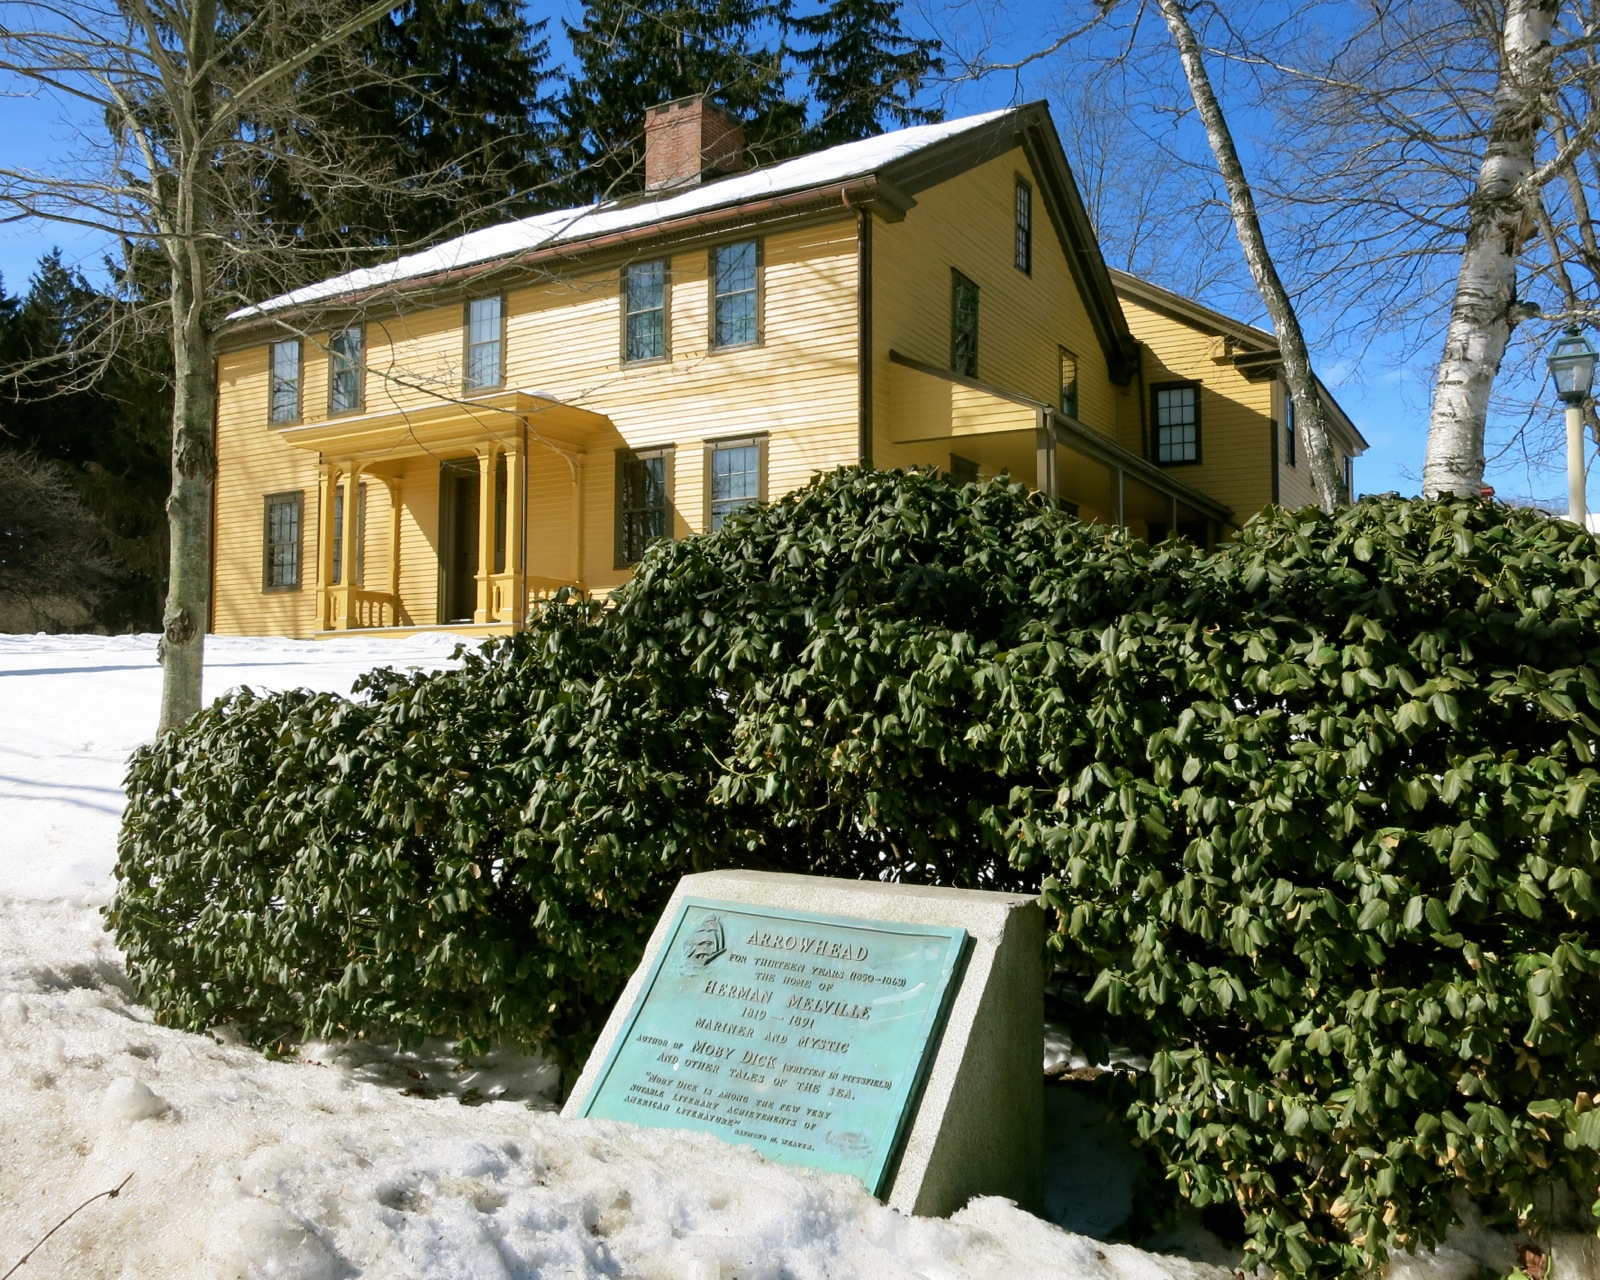 Arrowhead Herman Melville Pittsfield MA Tour Homes of Famous Authors